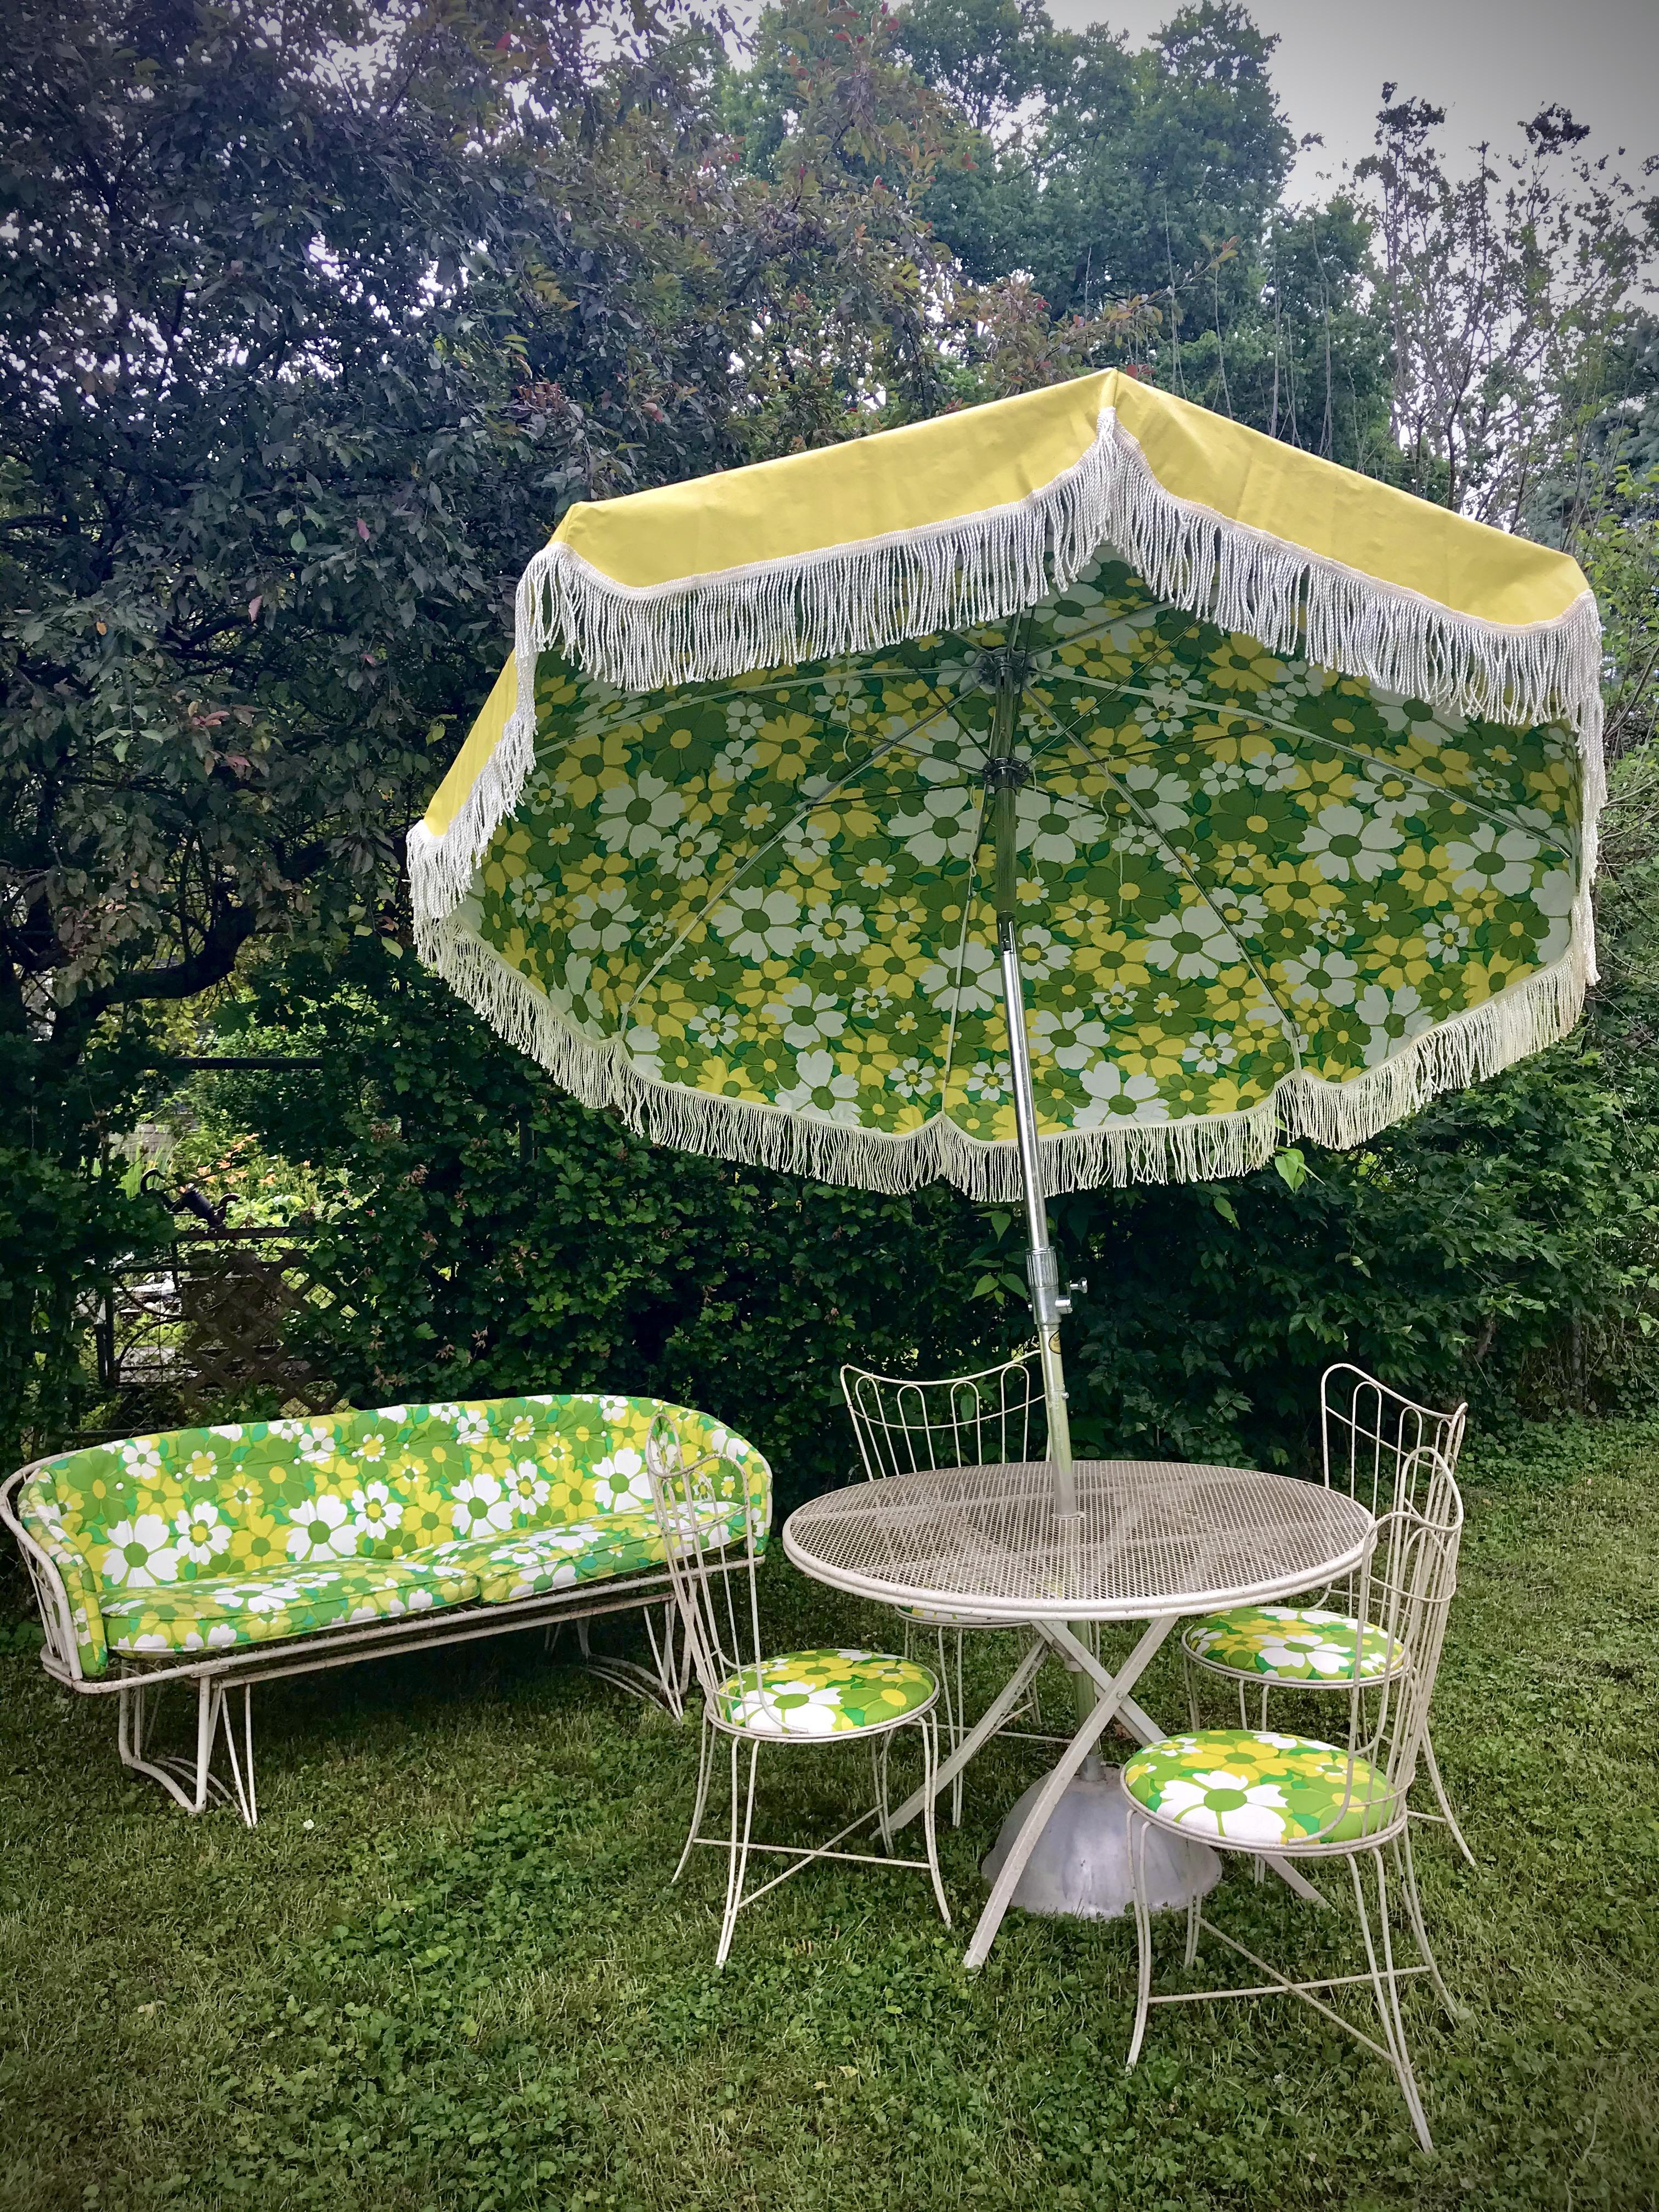 we found the perfect outdoor patio set